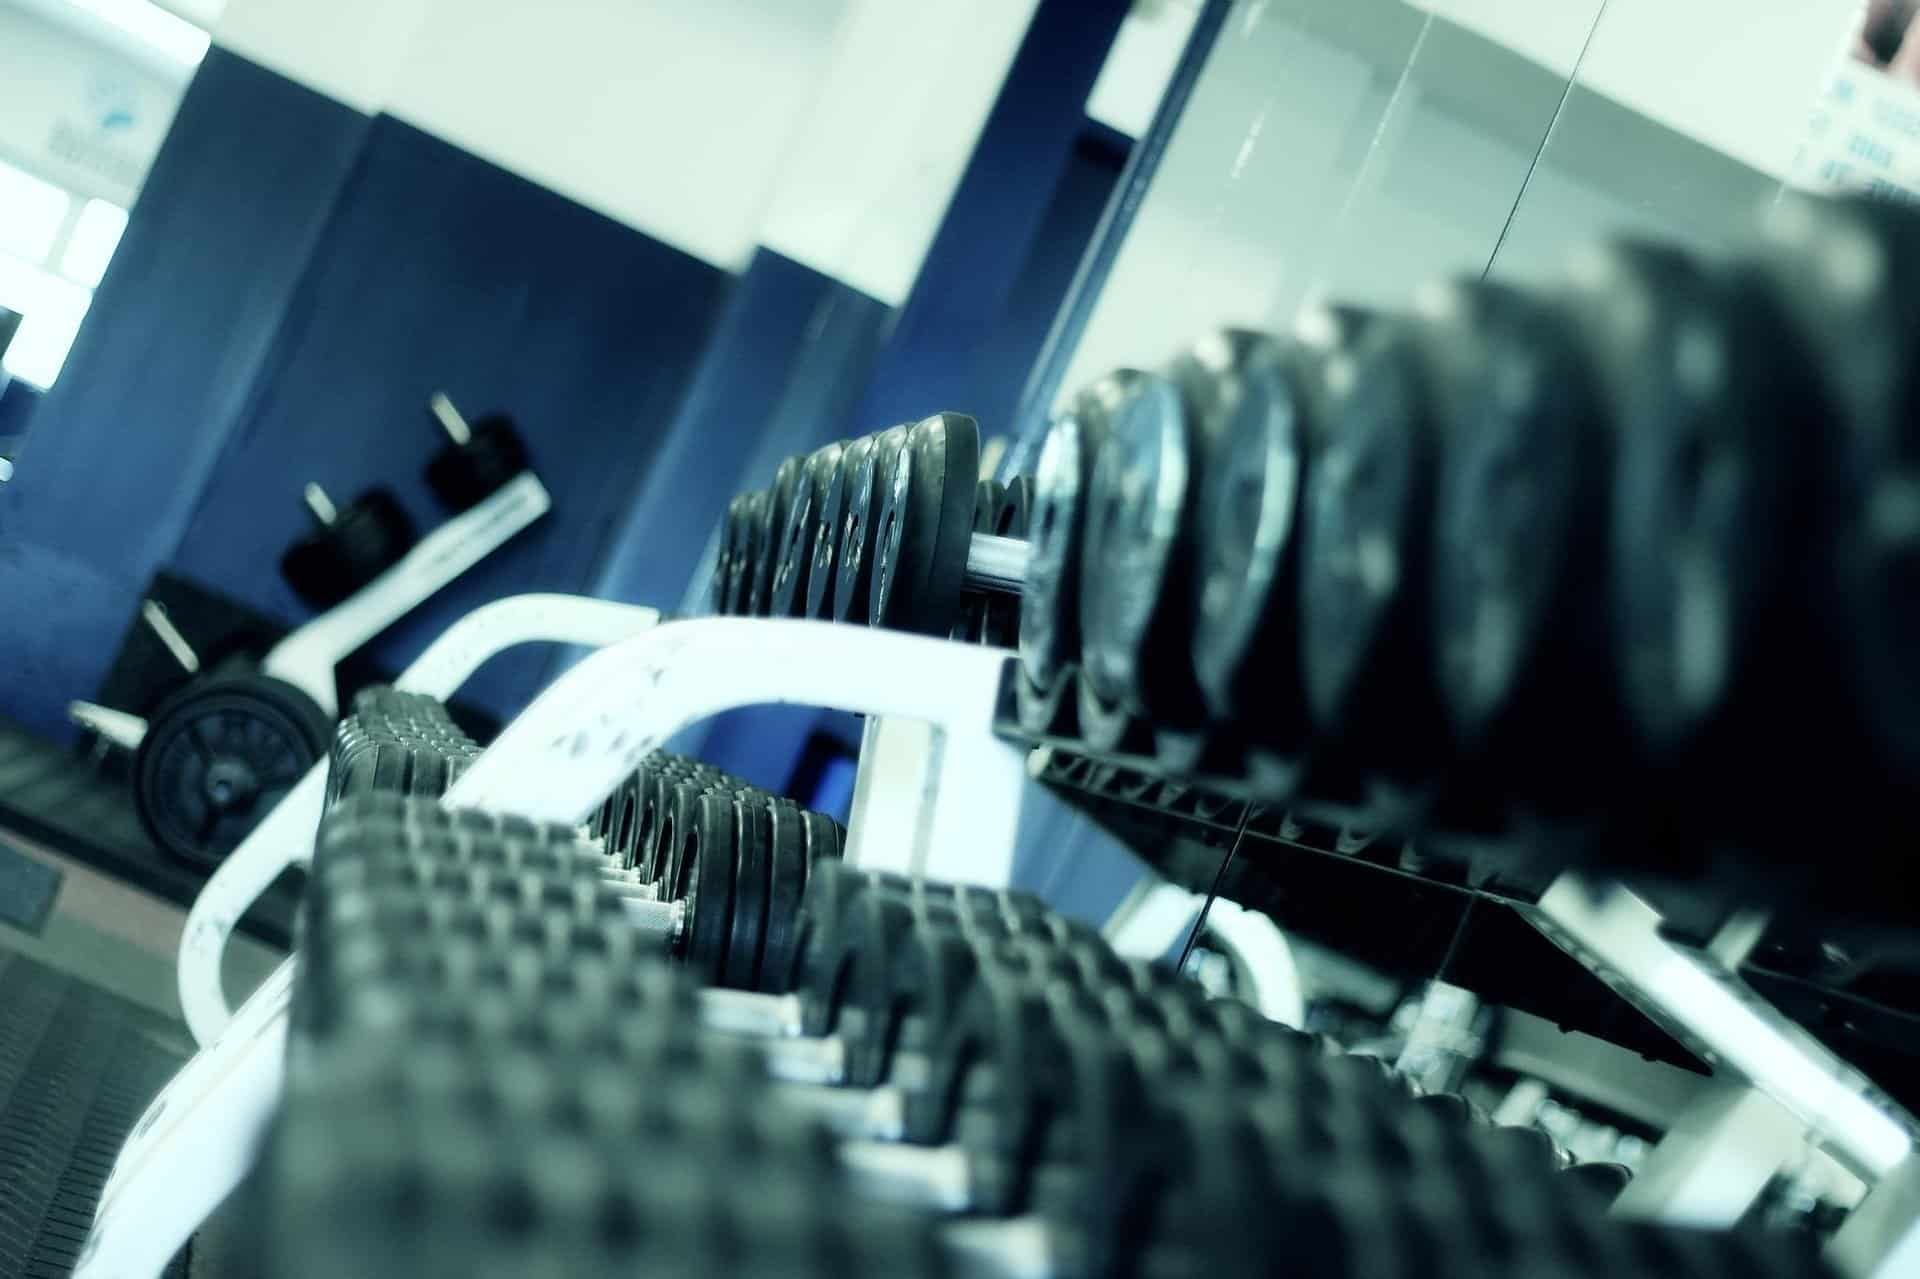 Many Canadians do not plan on returning to the gym even when able